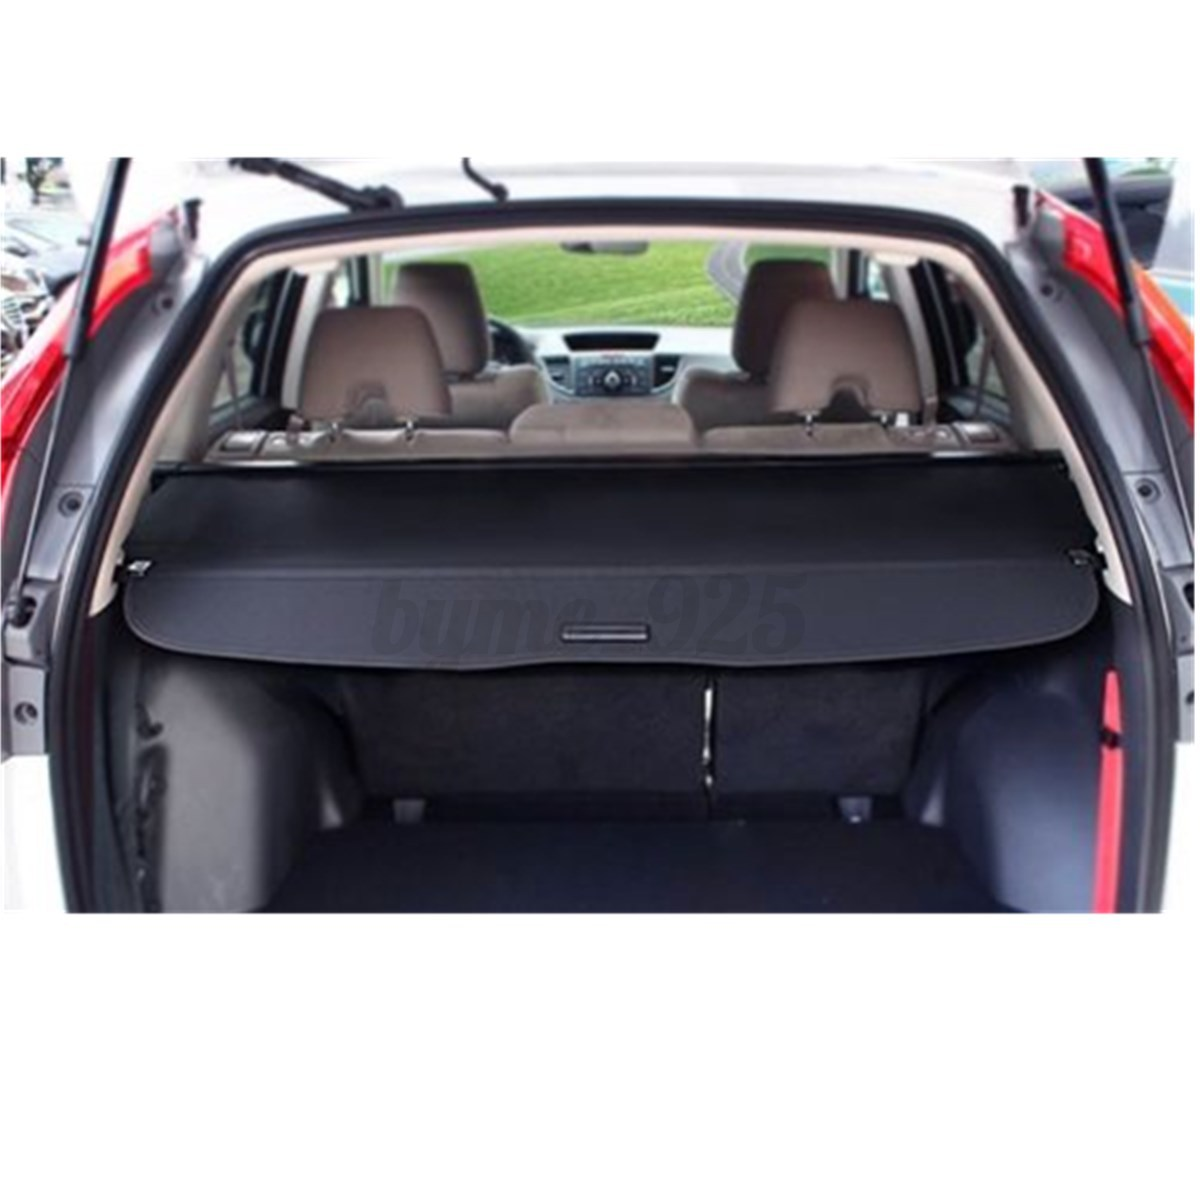 us black canvas cargo cover security trunk shield fit for. Black Bedroom Furniture Sets. Home Design Ideas